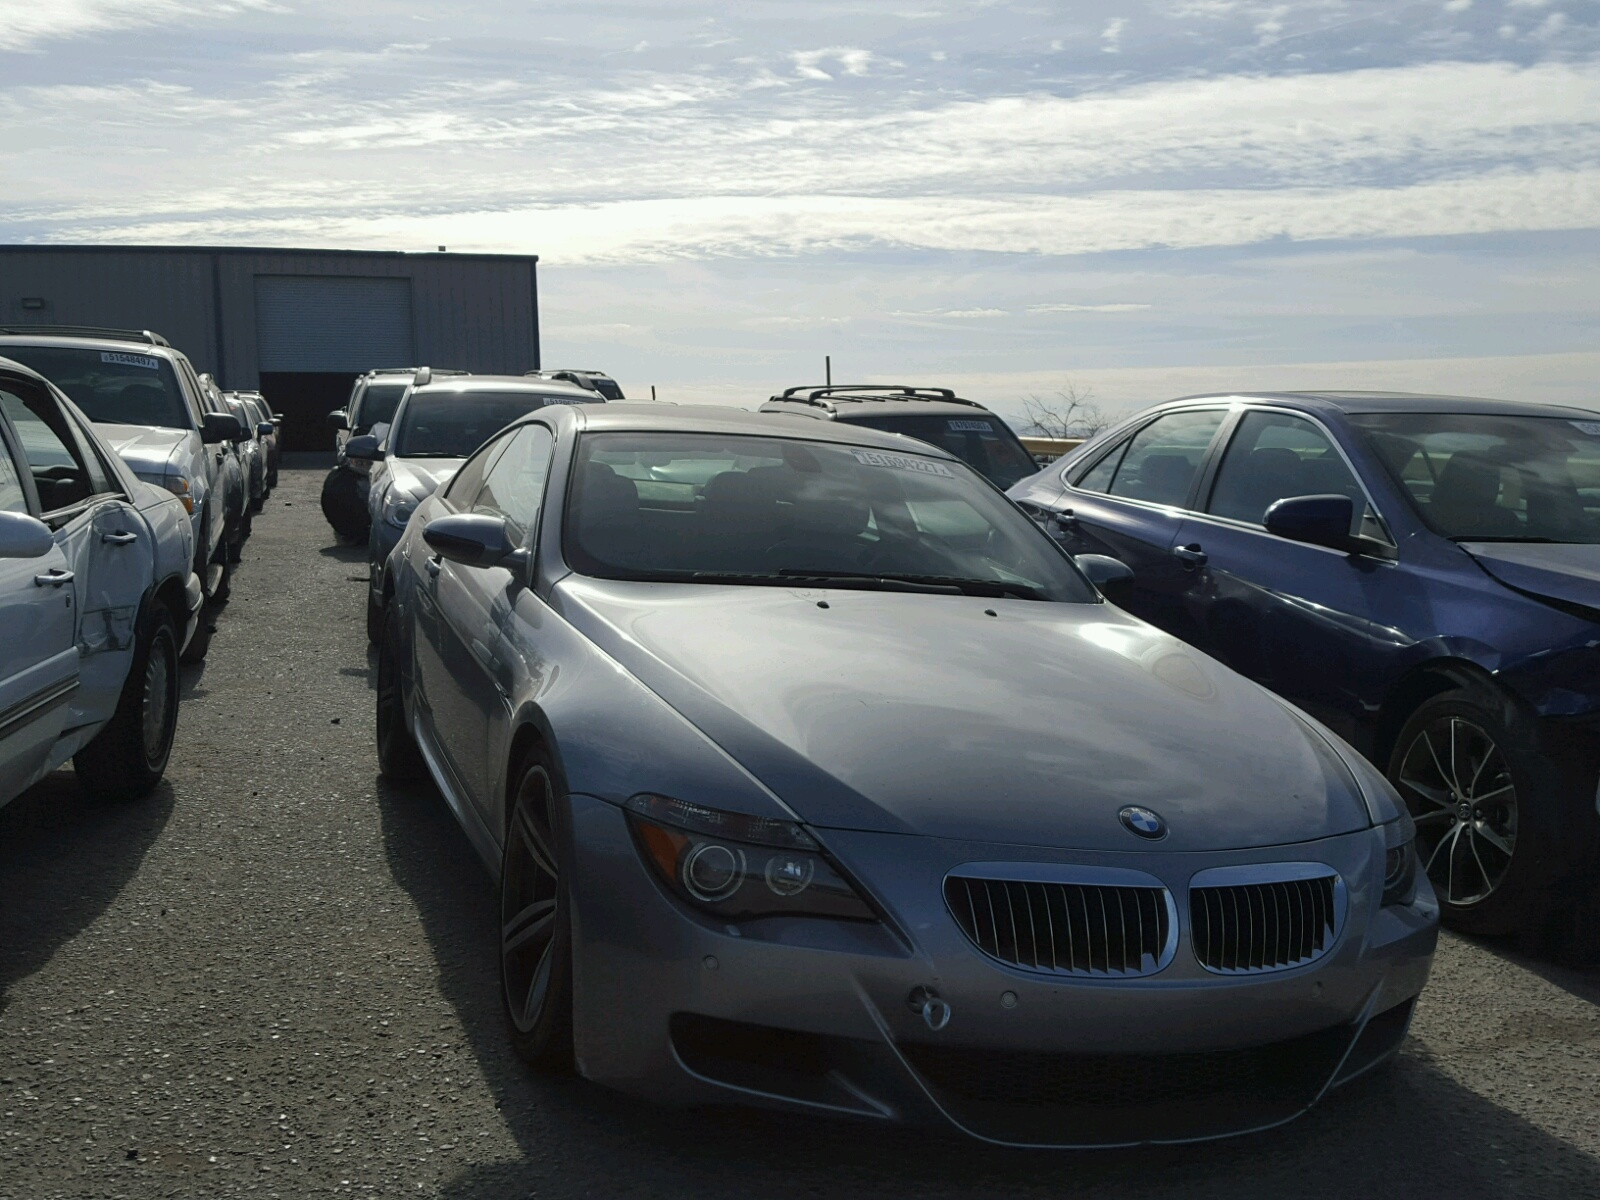 Auto Auction Ended On VIN WBSEHB BMW M In NM - 2006 bmw m6 sale